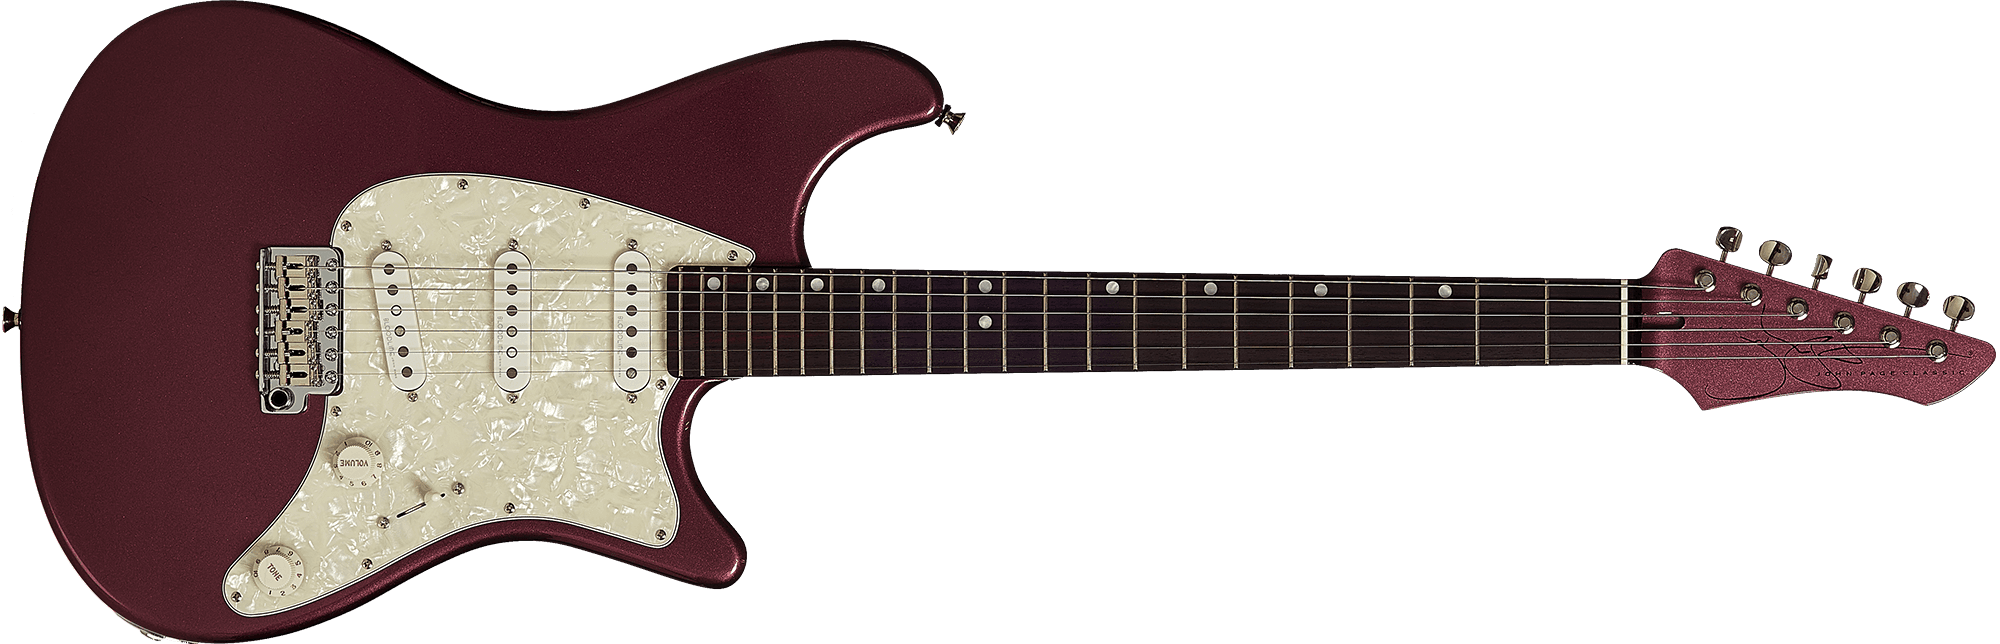 The Ashburn LE - John Page Classic Guitars